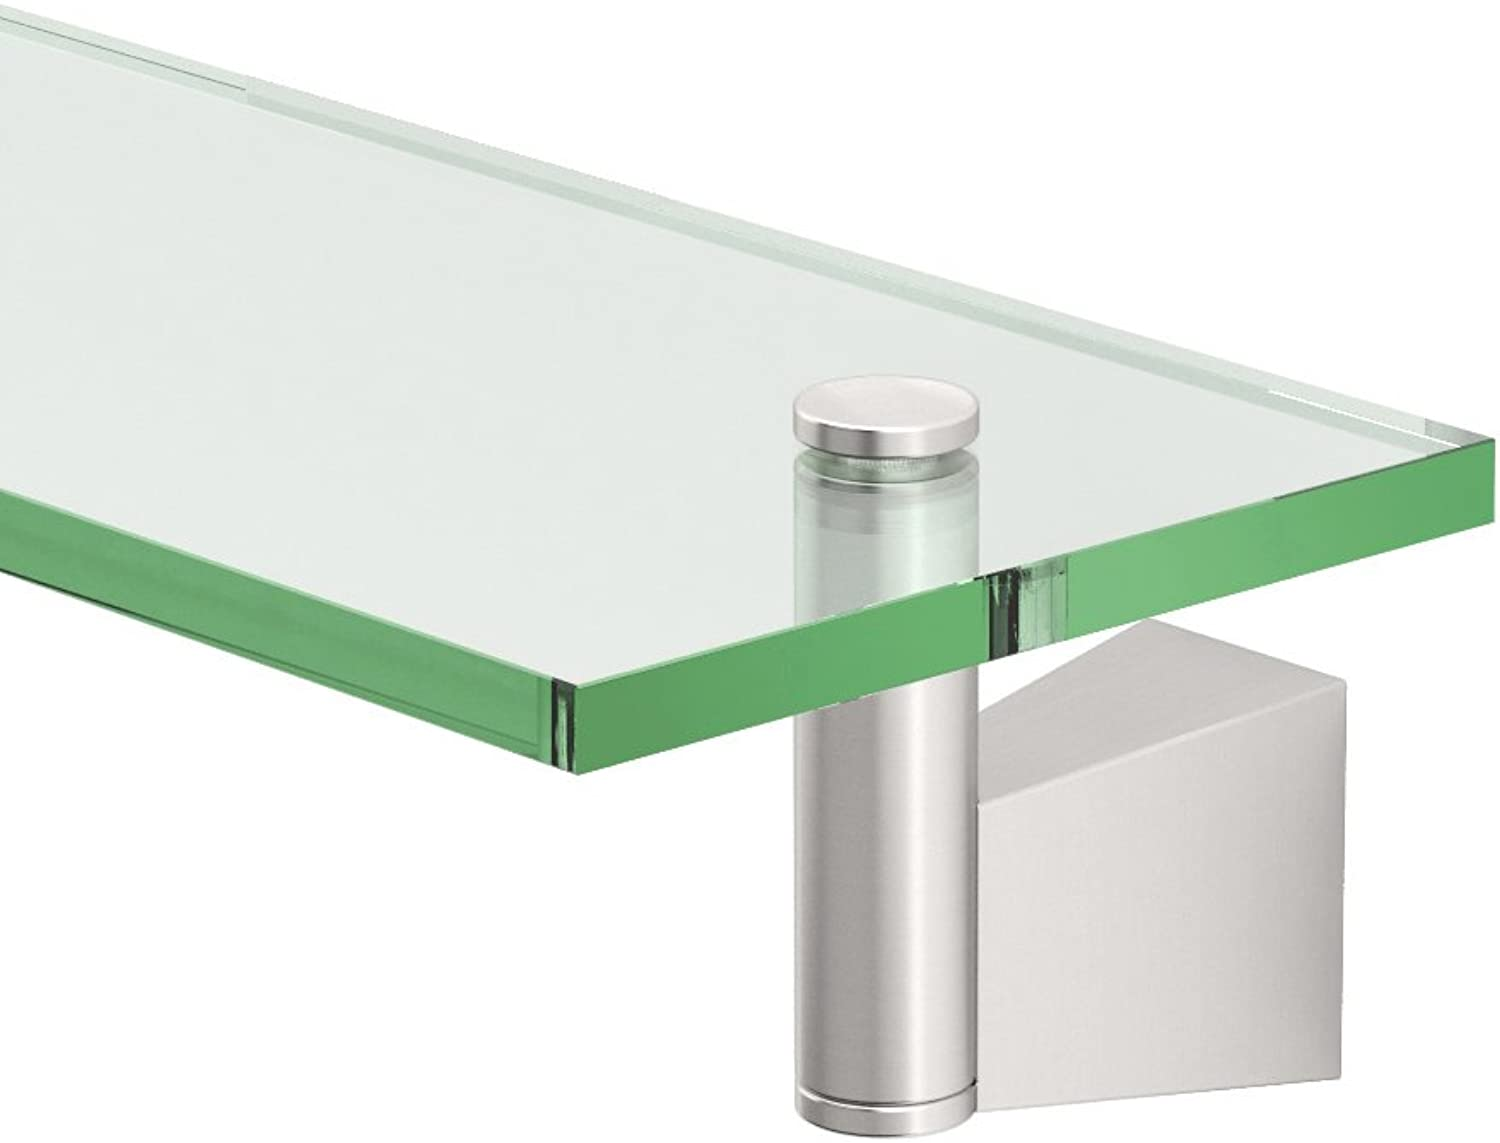 Gatco 4736 blue Glass Shelf, Satin Nickel